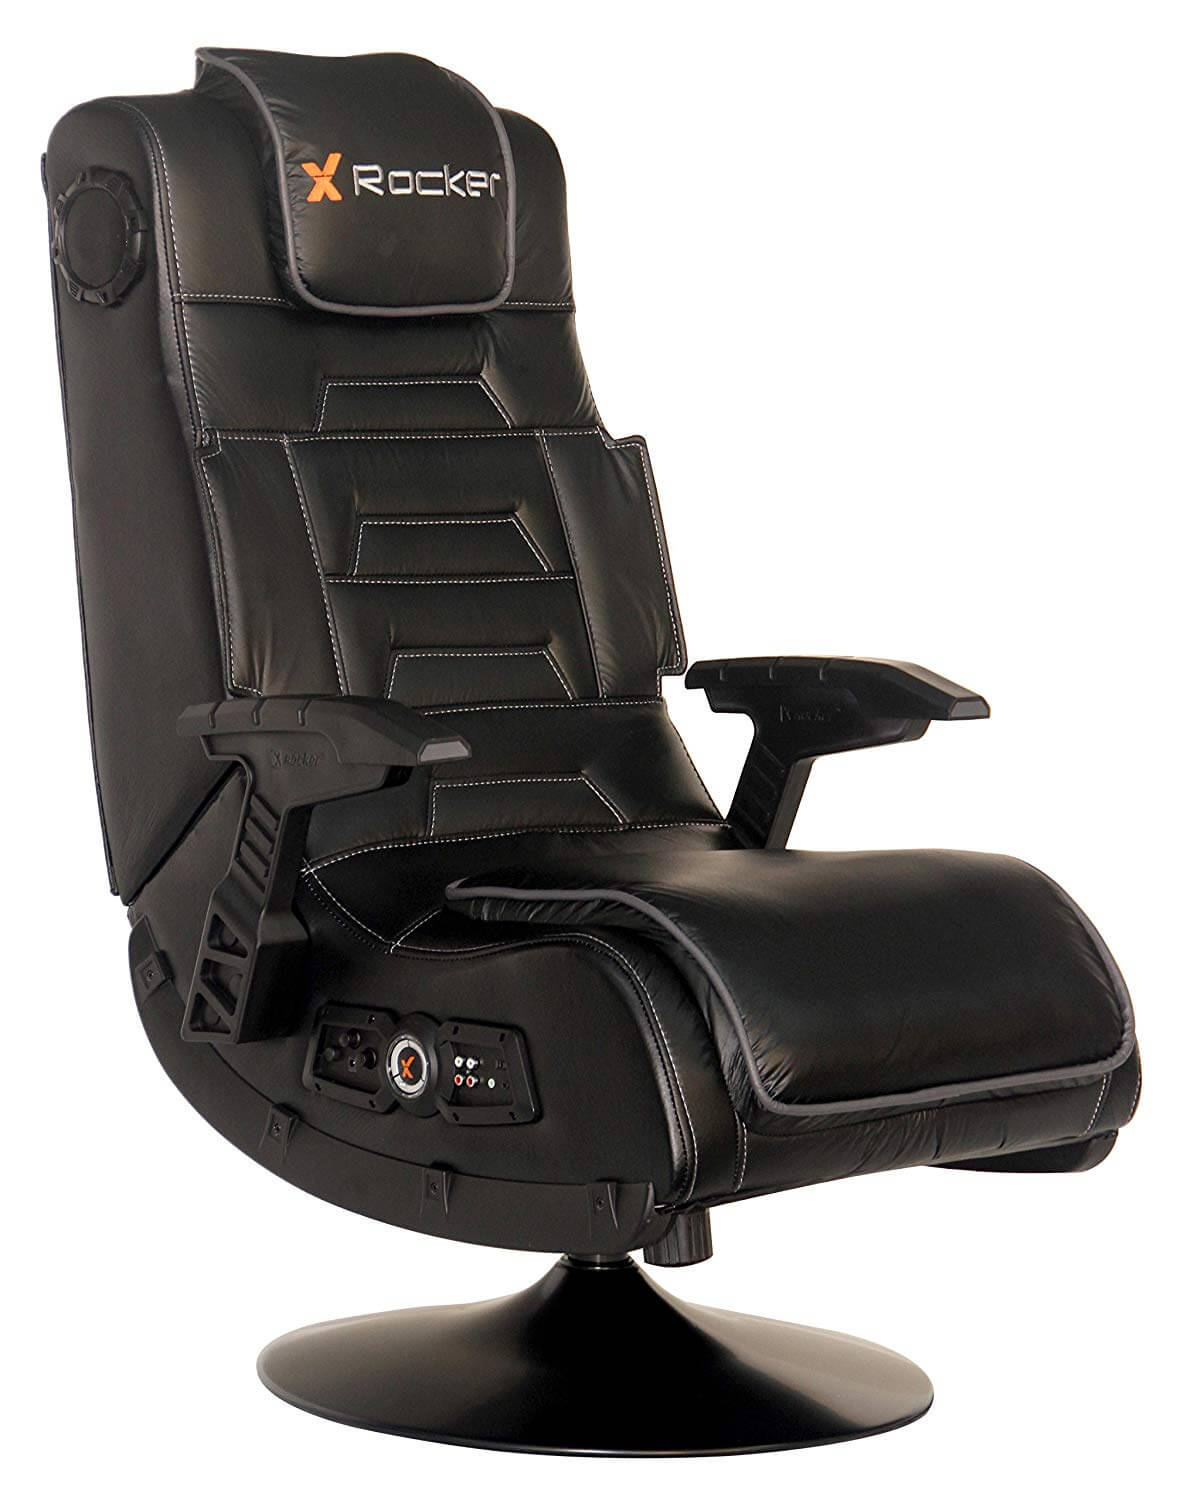 Best Gaming Recliner Ultimate List 2019 Updated